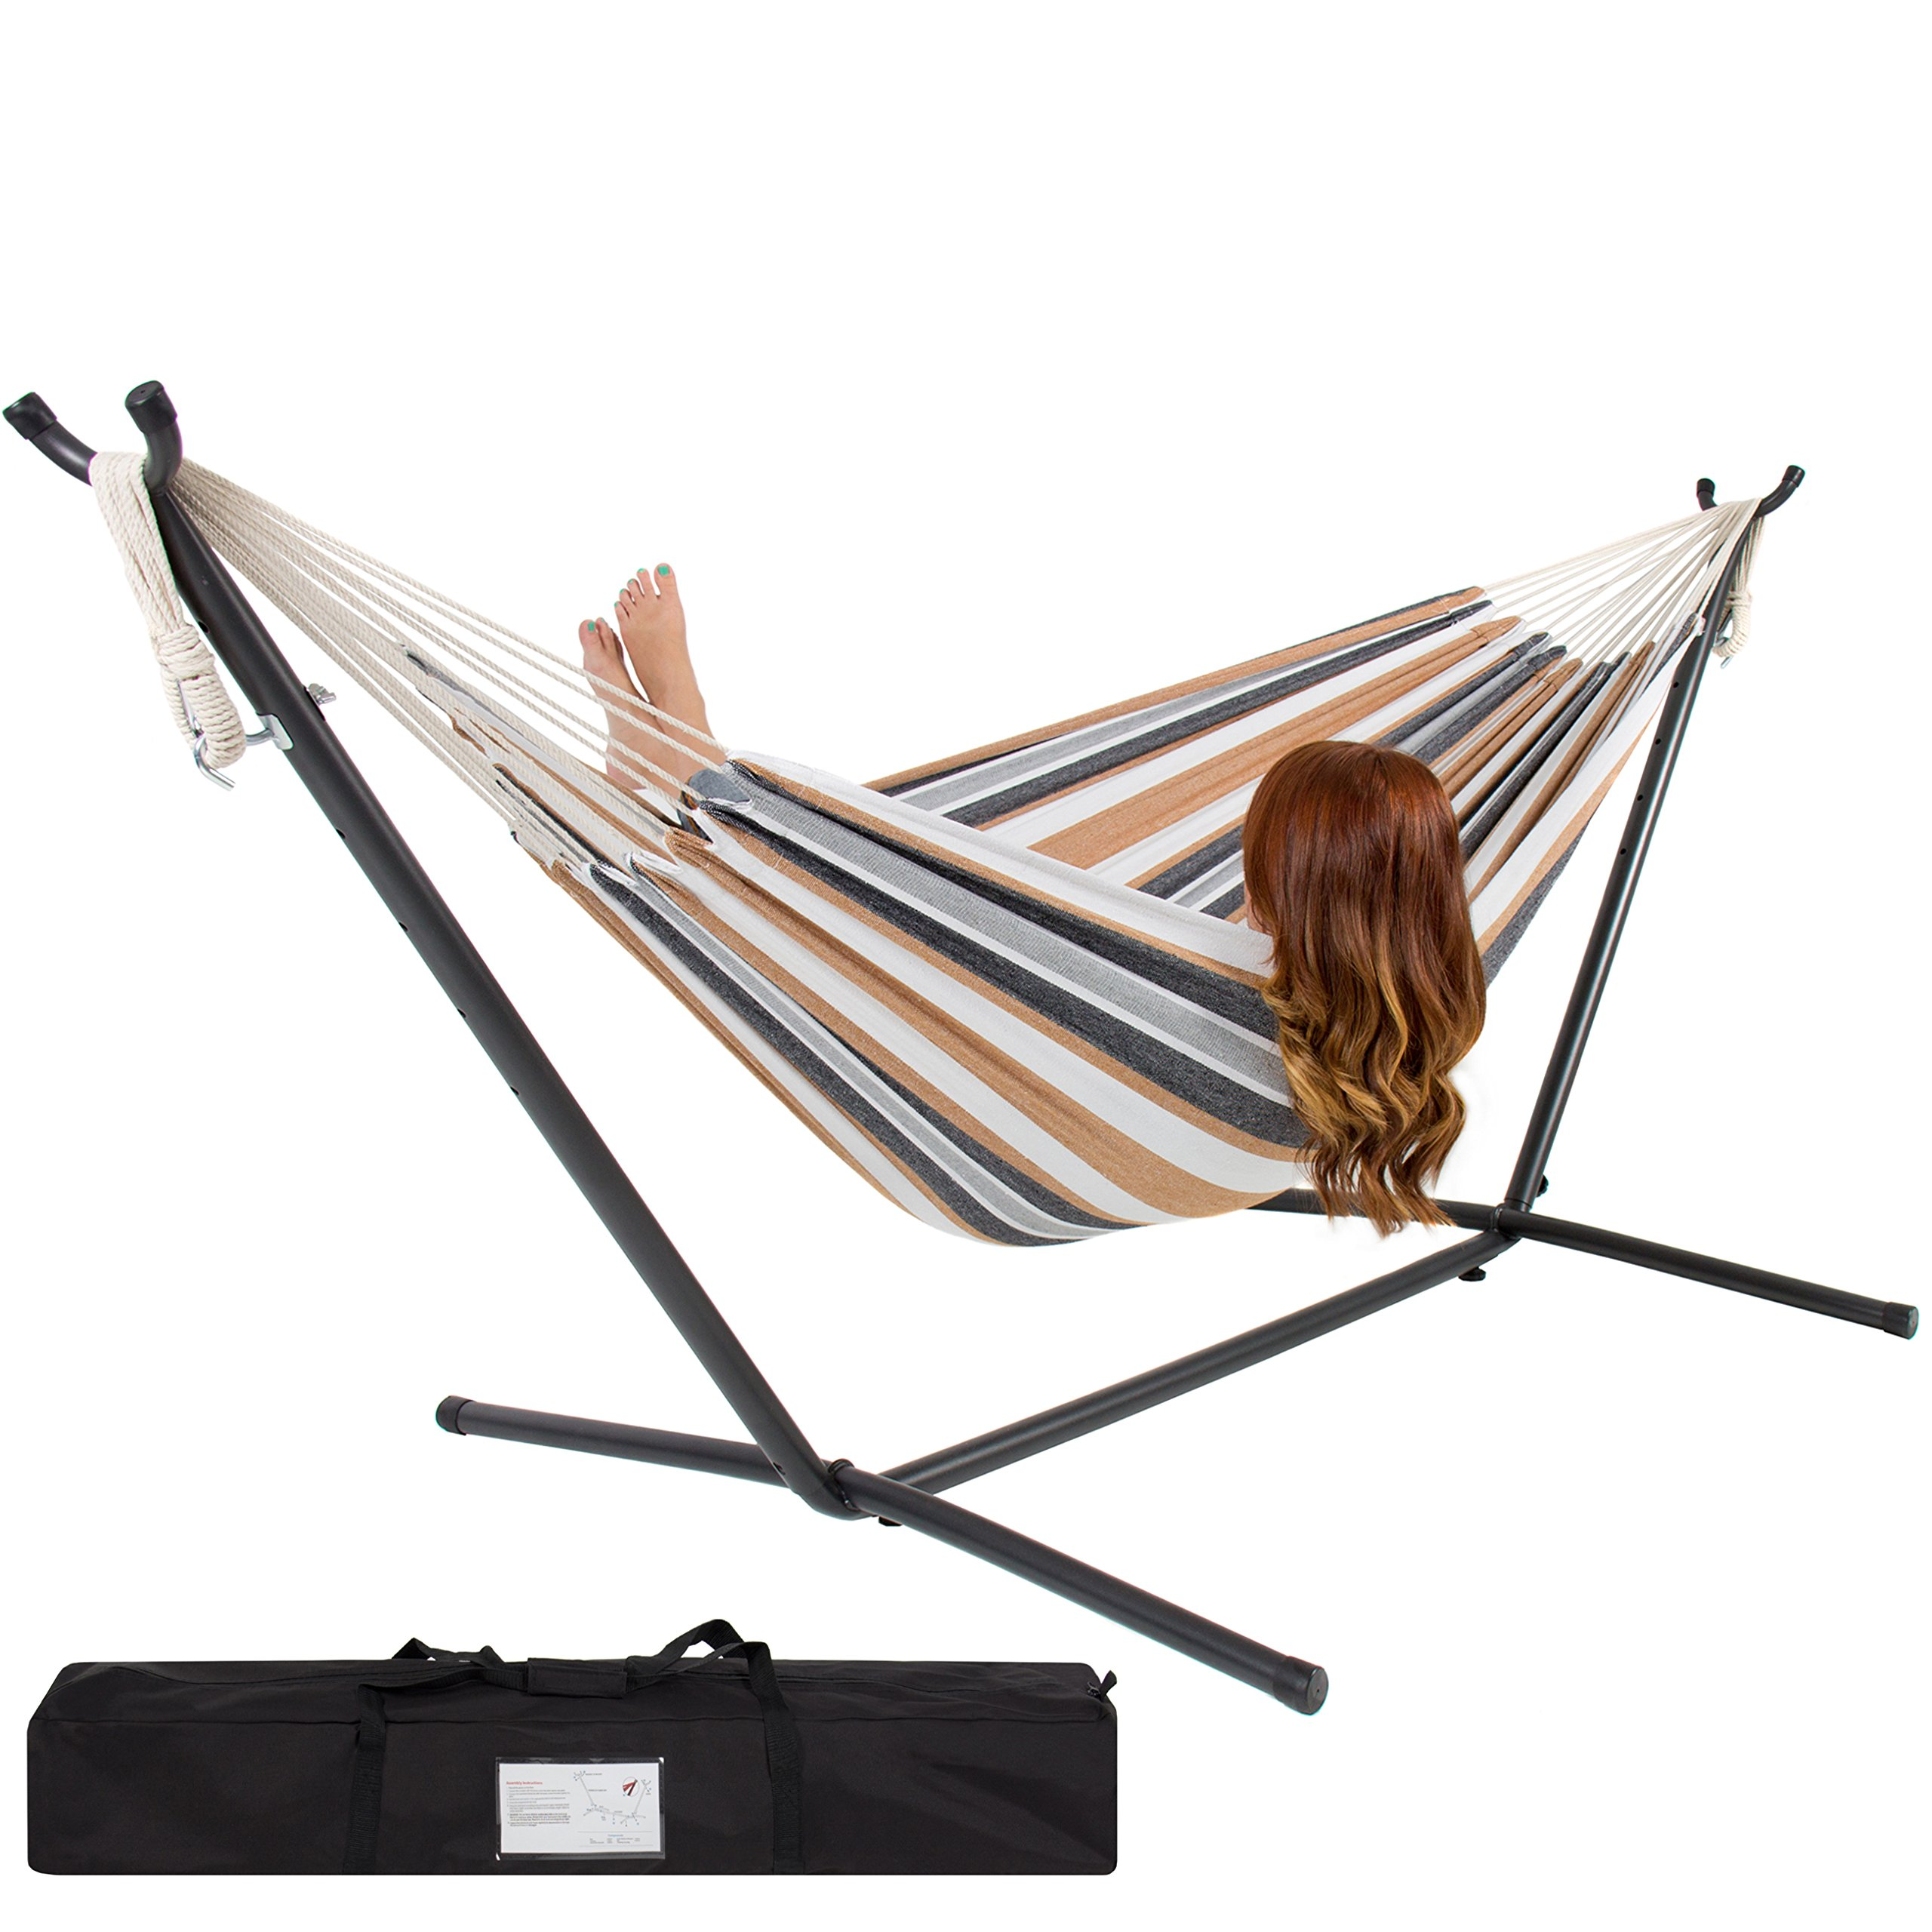 adjustable chair for homemade frames with strong doublenest diy and hammock tensegrity outdoor indoor eno fully stand rei sta use inspirations alone camping